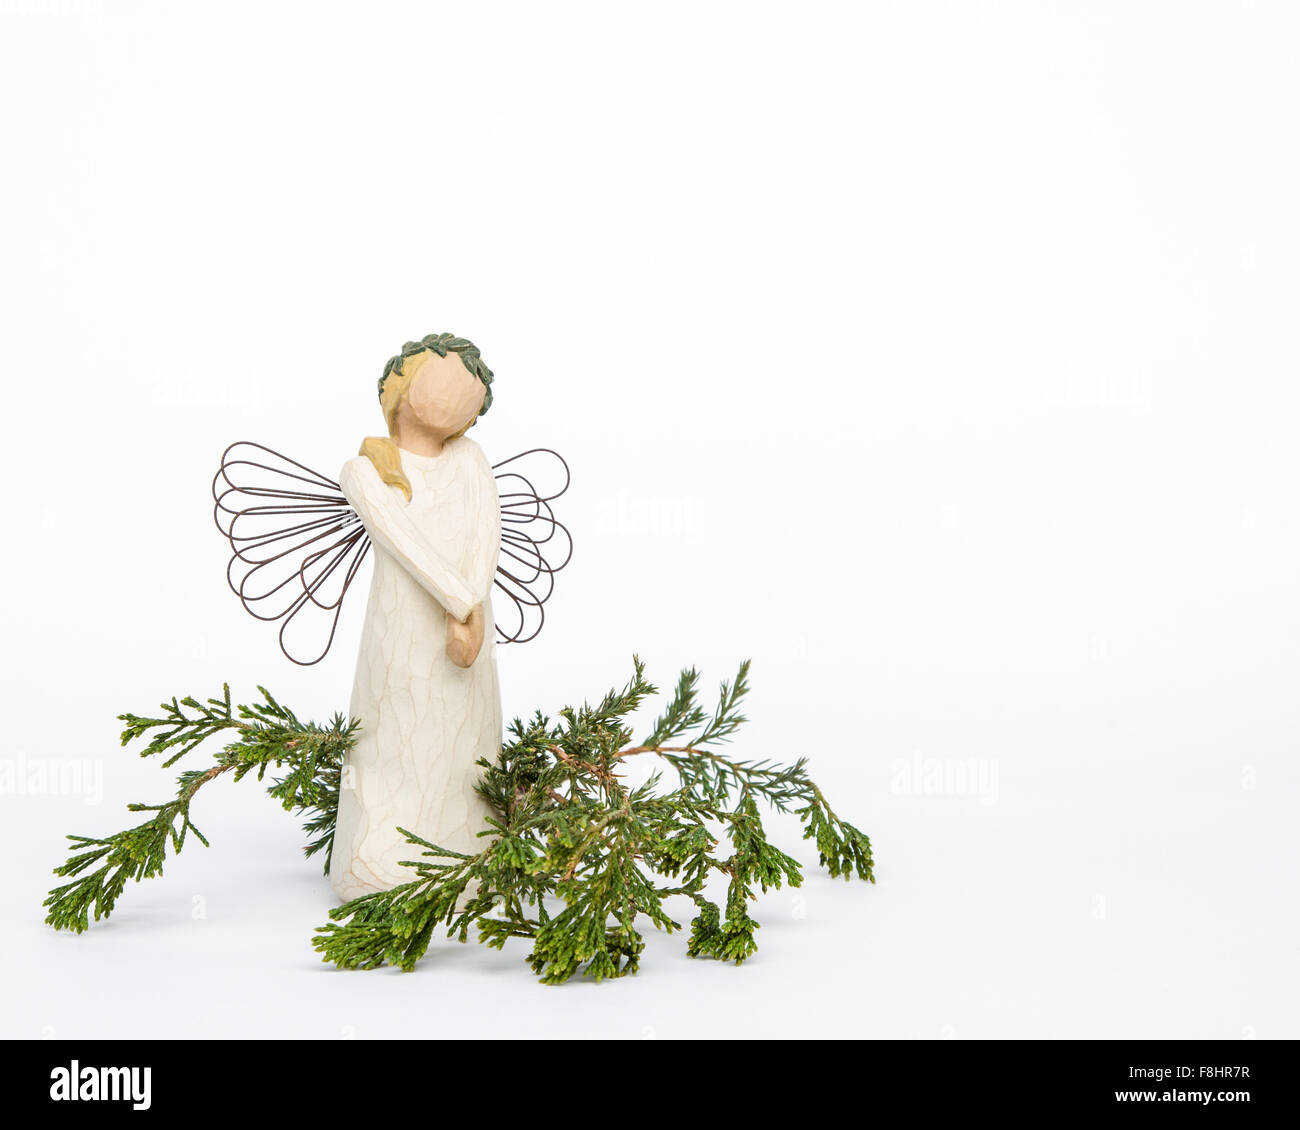 Faceless angel ornament with metal wings in a bed of live evergreens on white background with negative space on - Stock Image